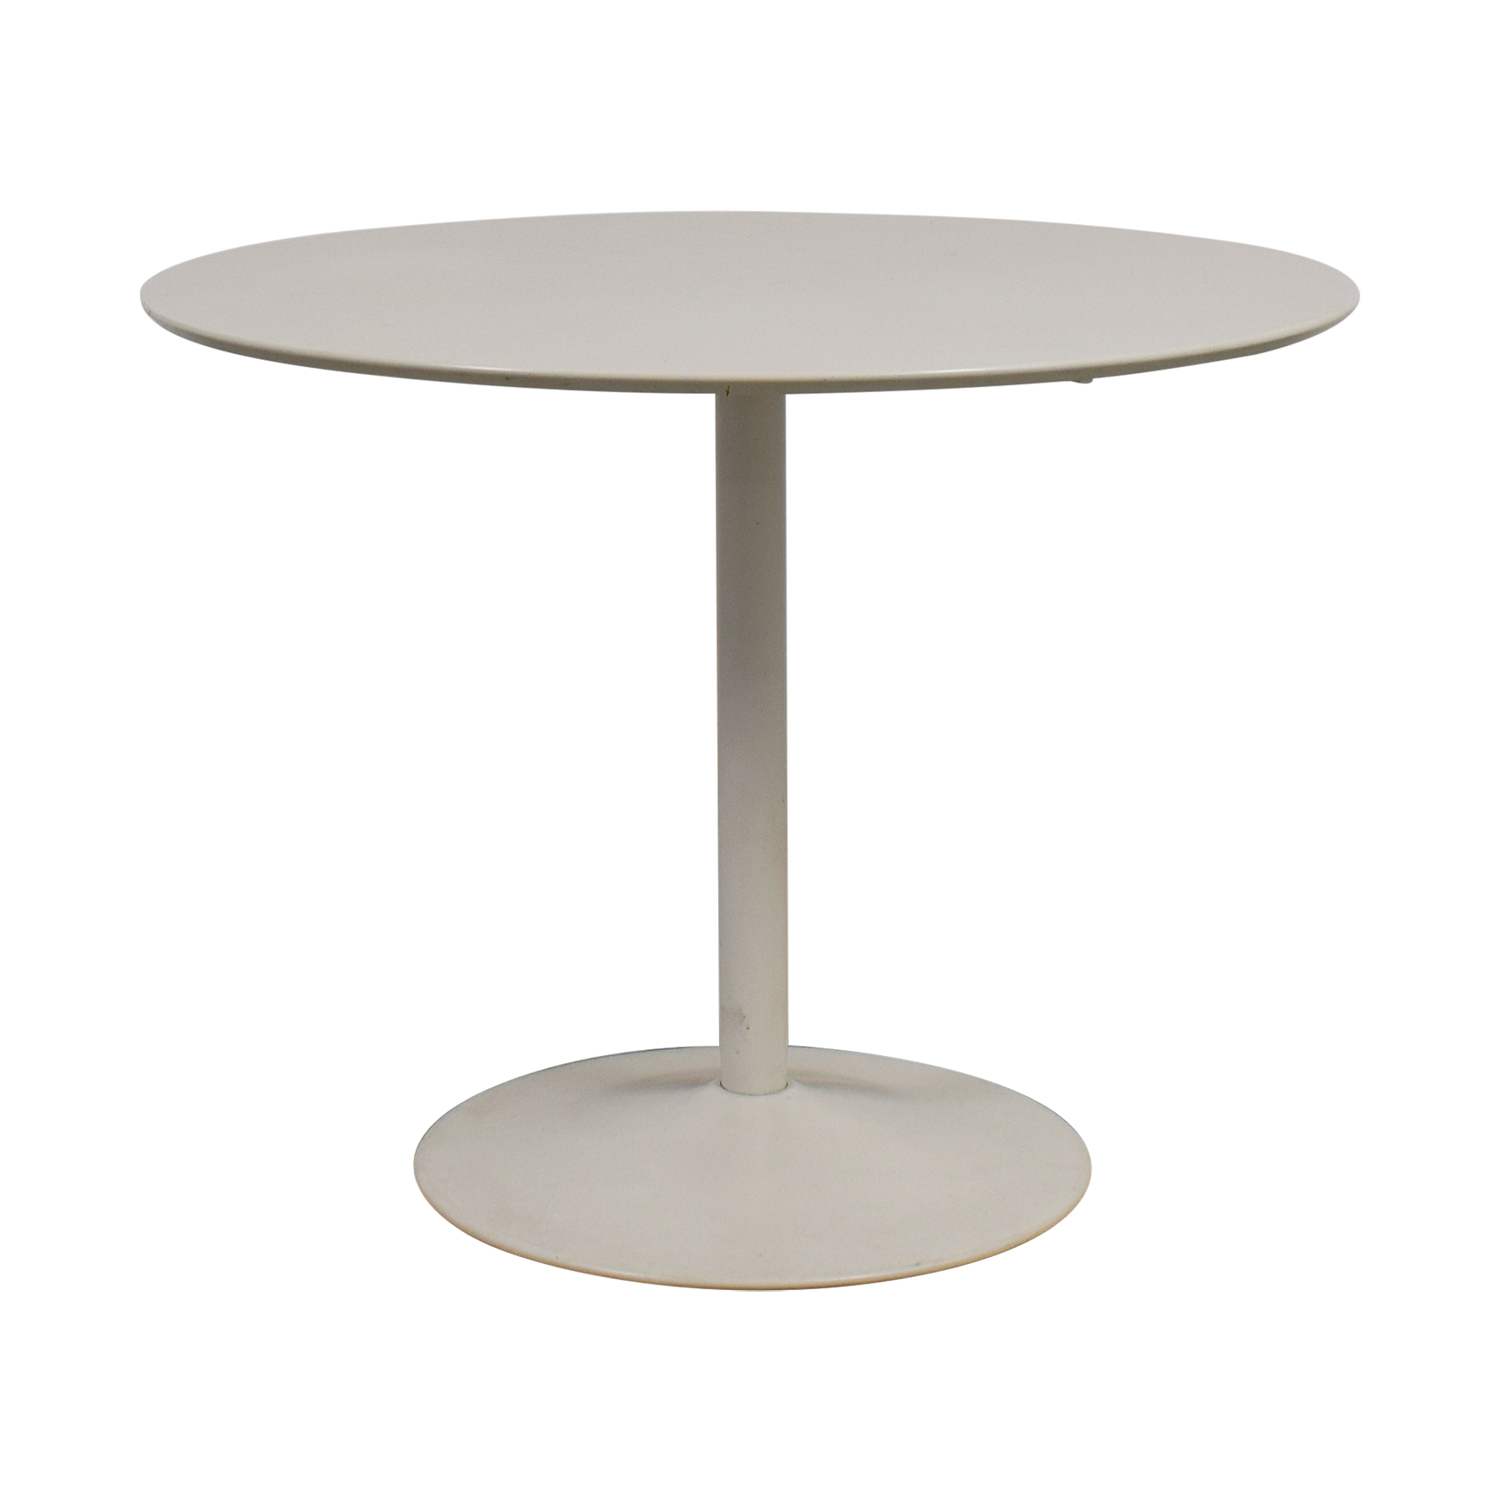 CB2 CB2 42 Pedestal Table nyc